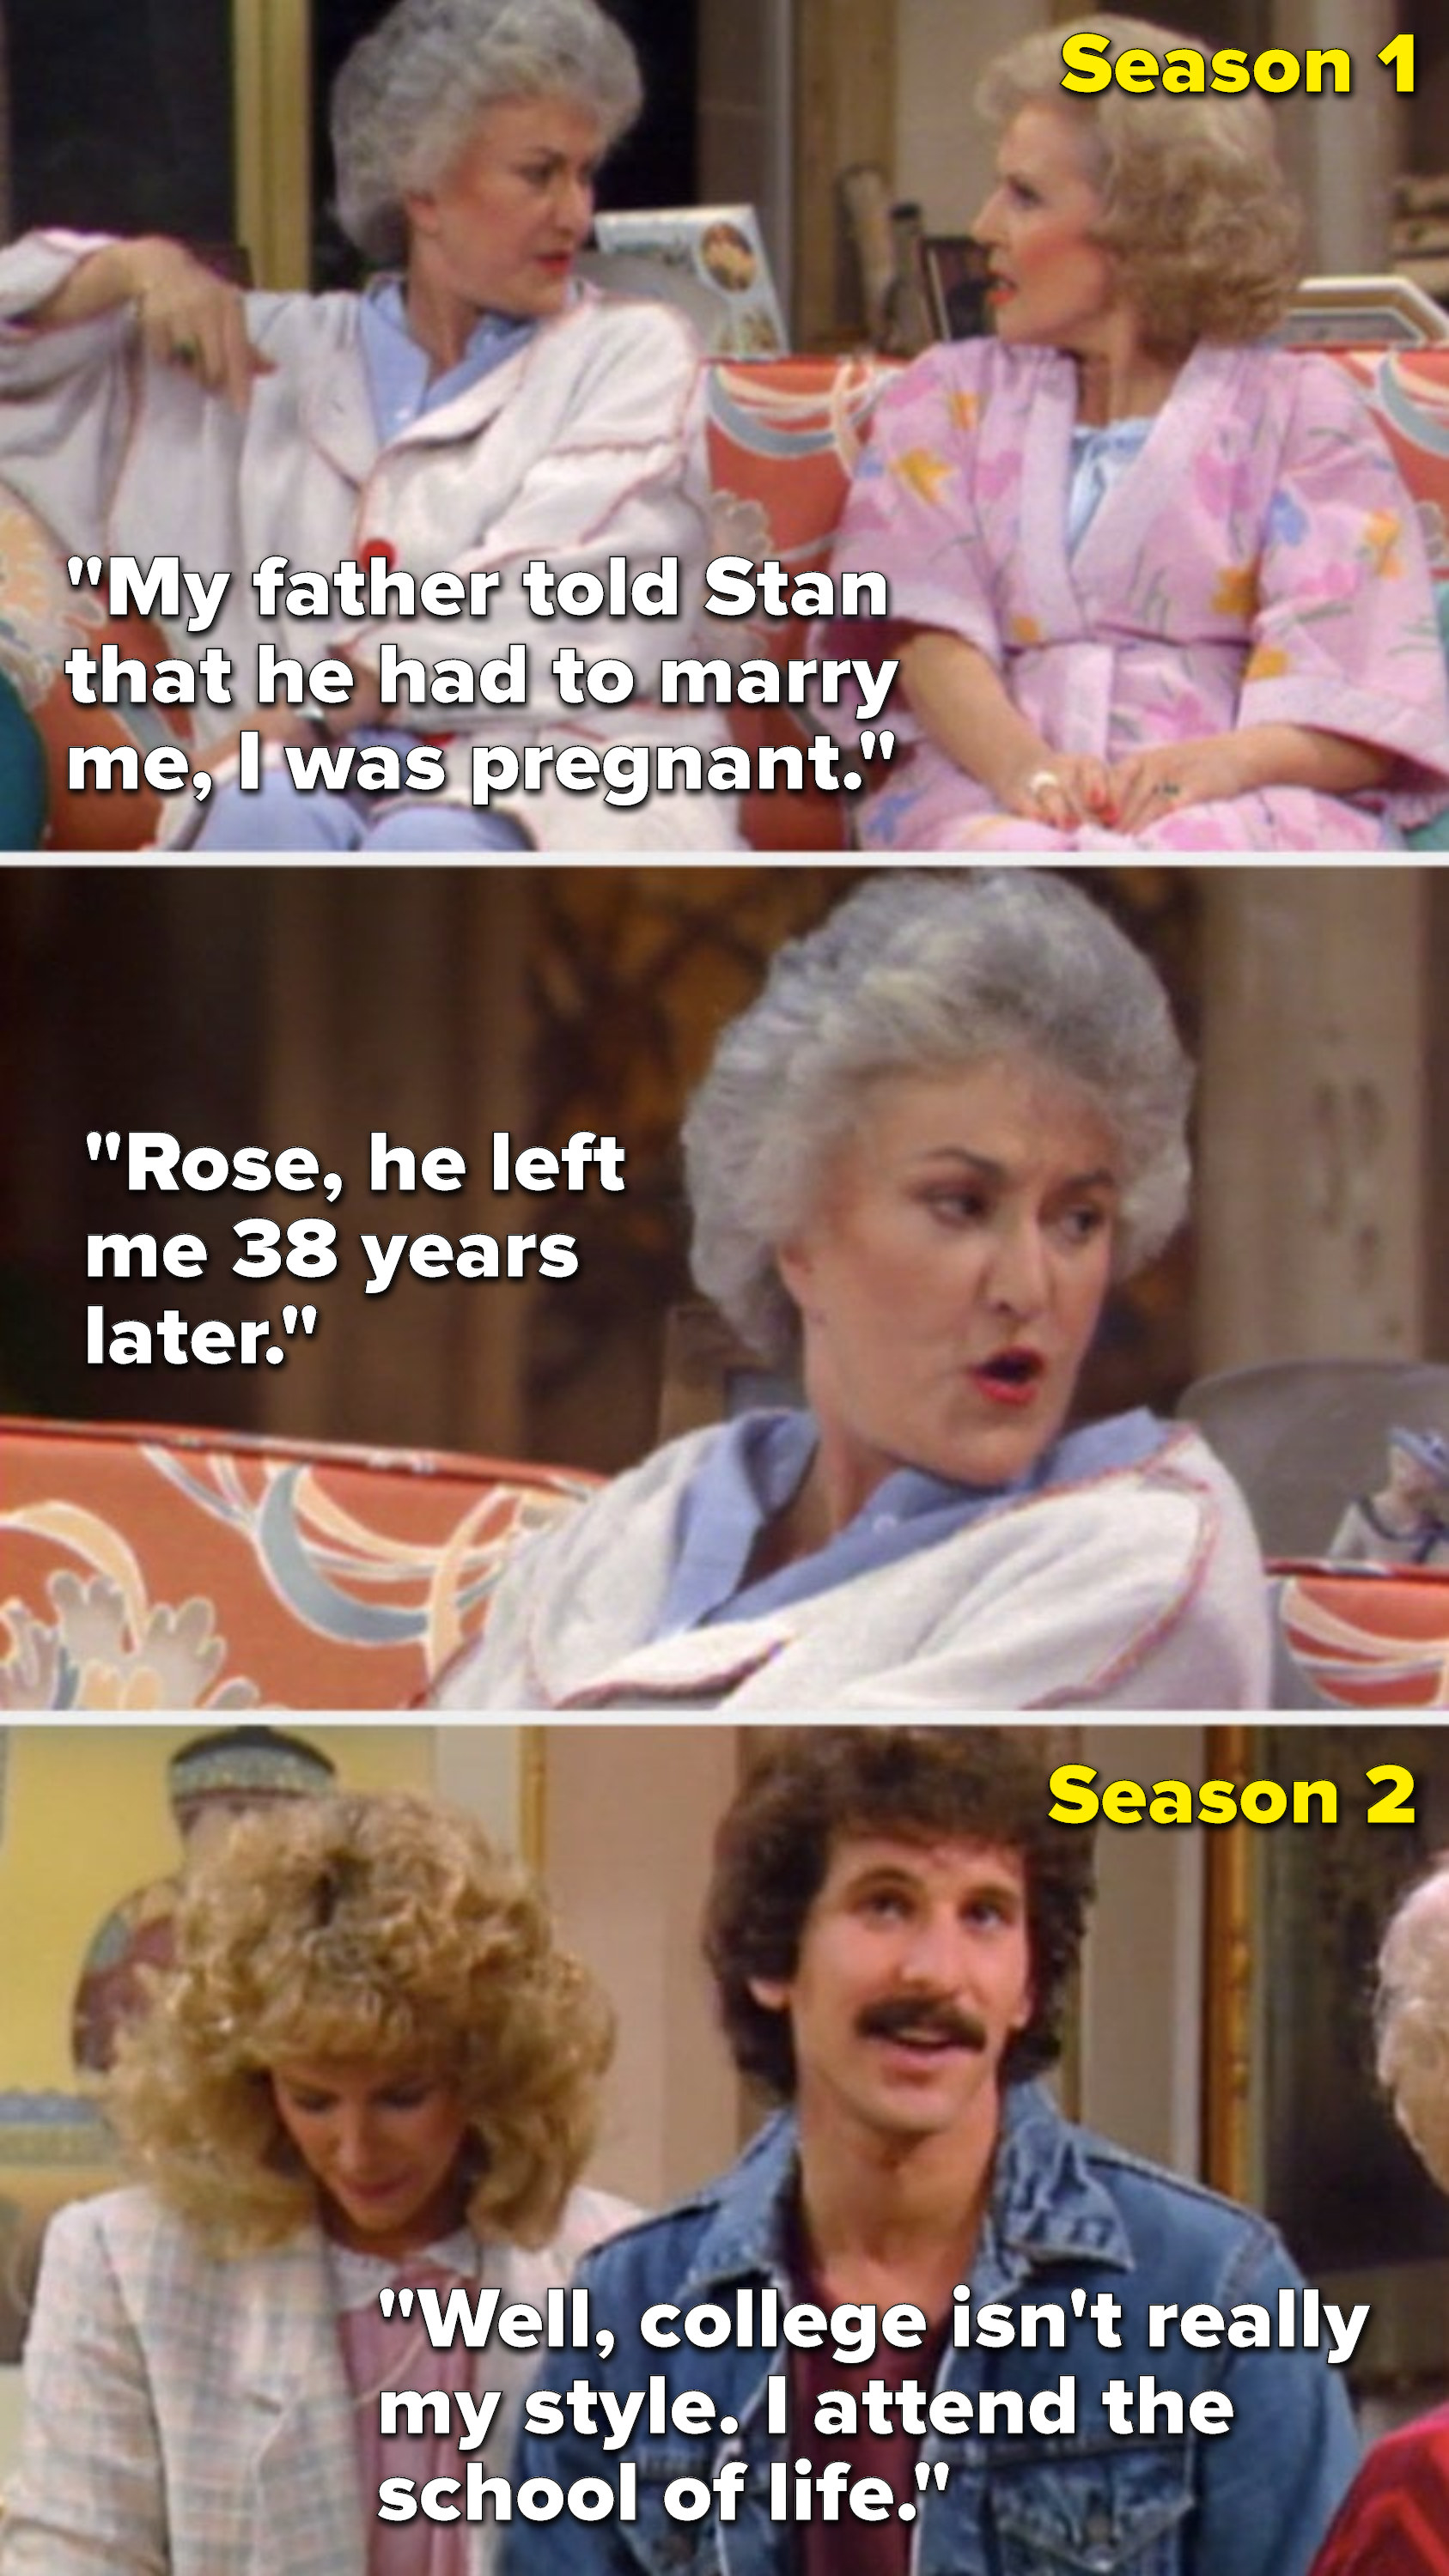 "In Season 1, Dorothy says, ""My father told Stan that he had to marry me, I was pregnant...Rose, he left me 38 years later,"" but in Season 2, Dorothy's son says, ""Well, college isn't really my style, I attend the school of life."""